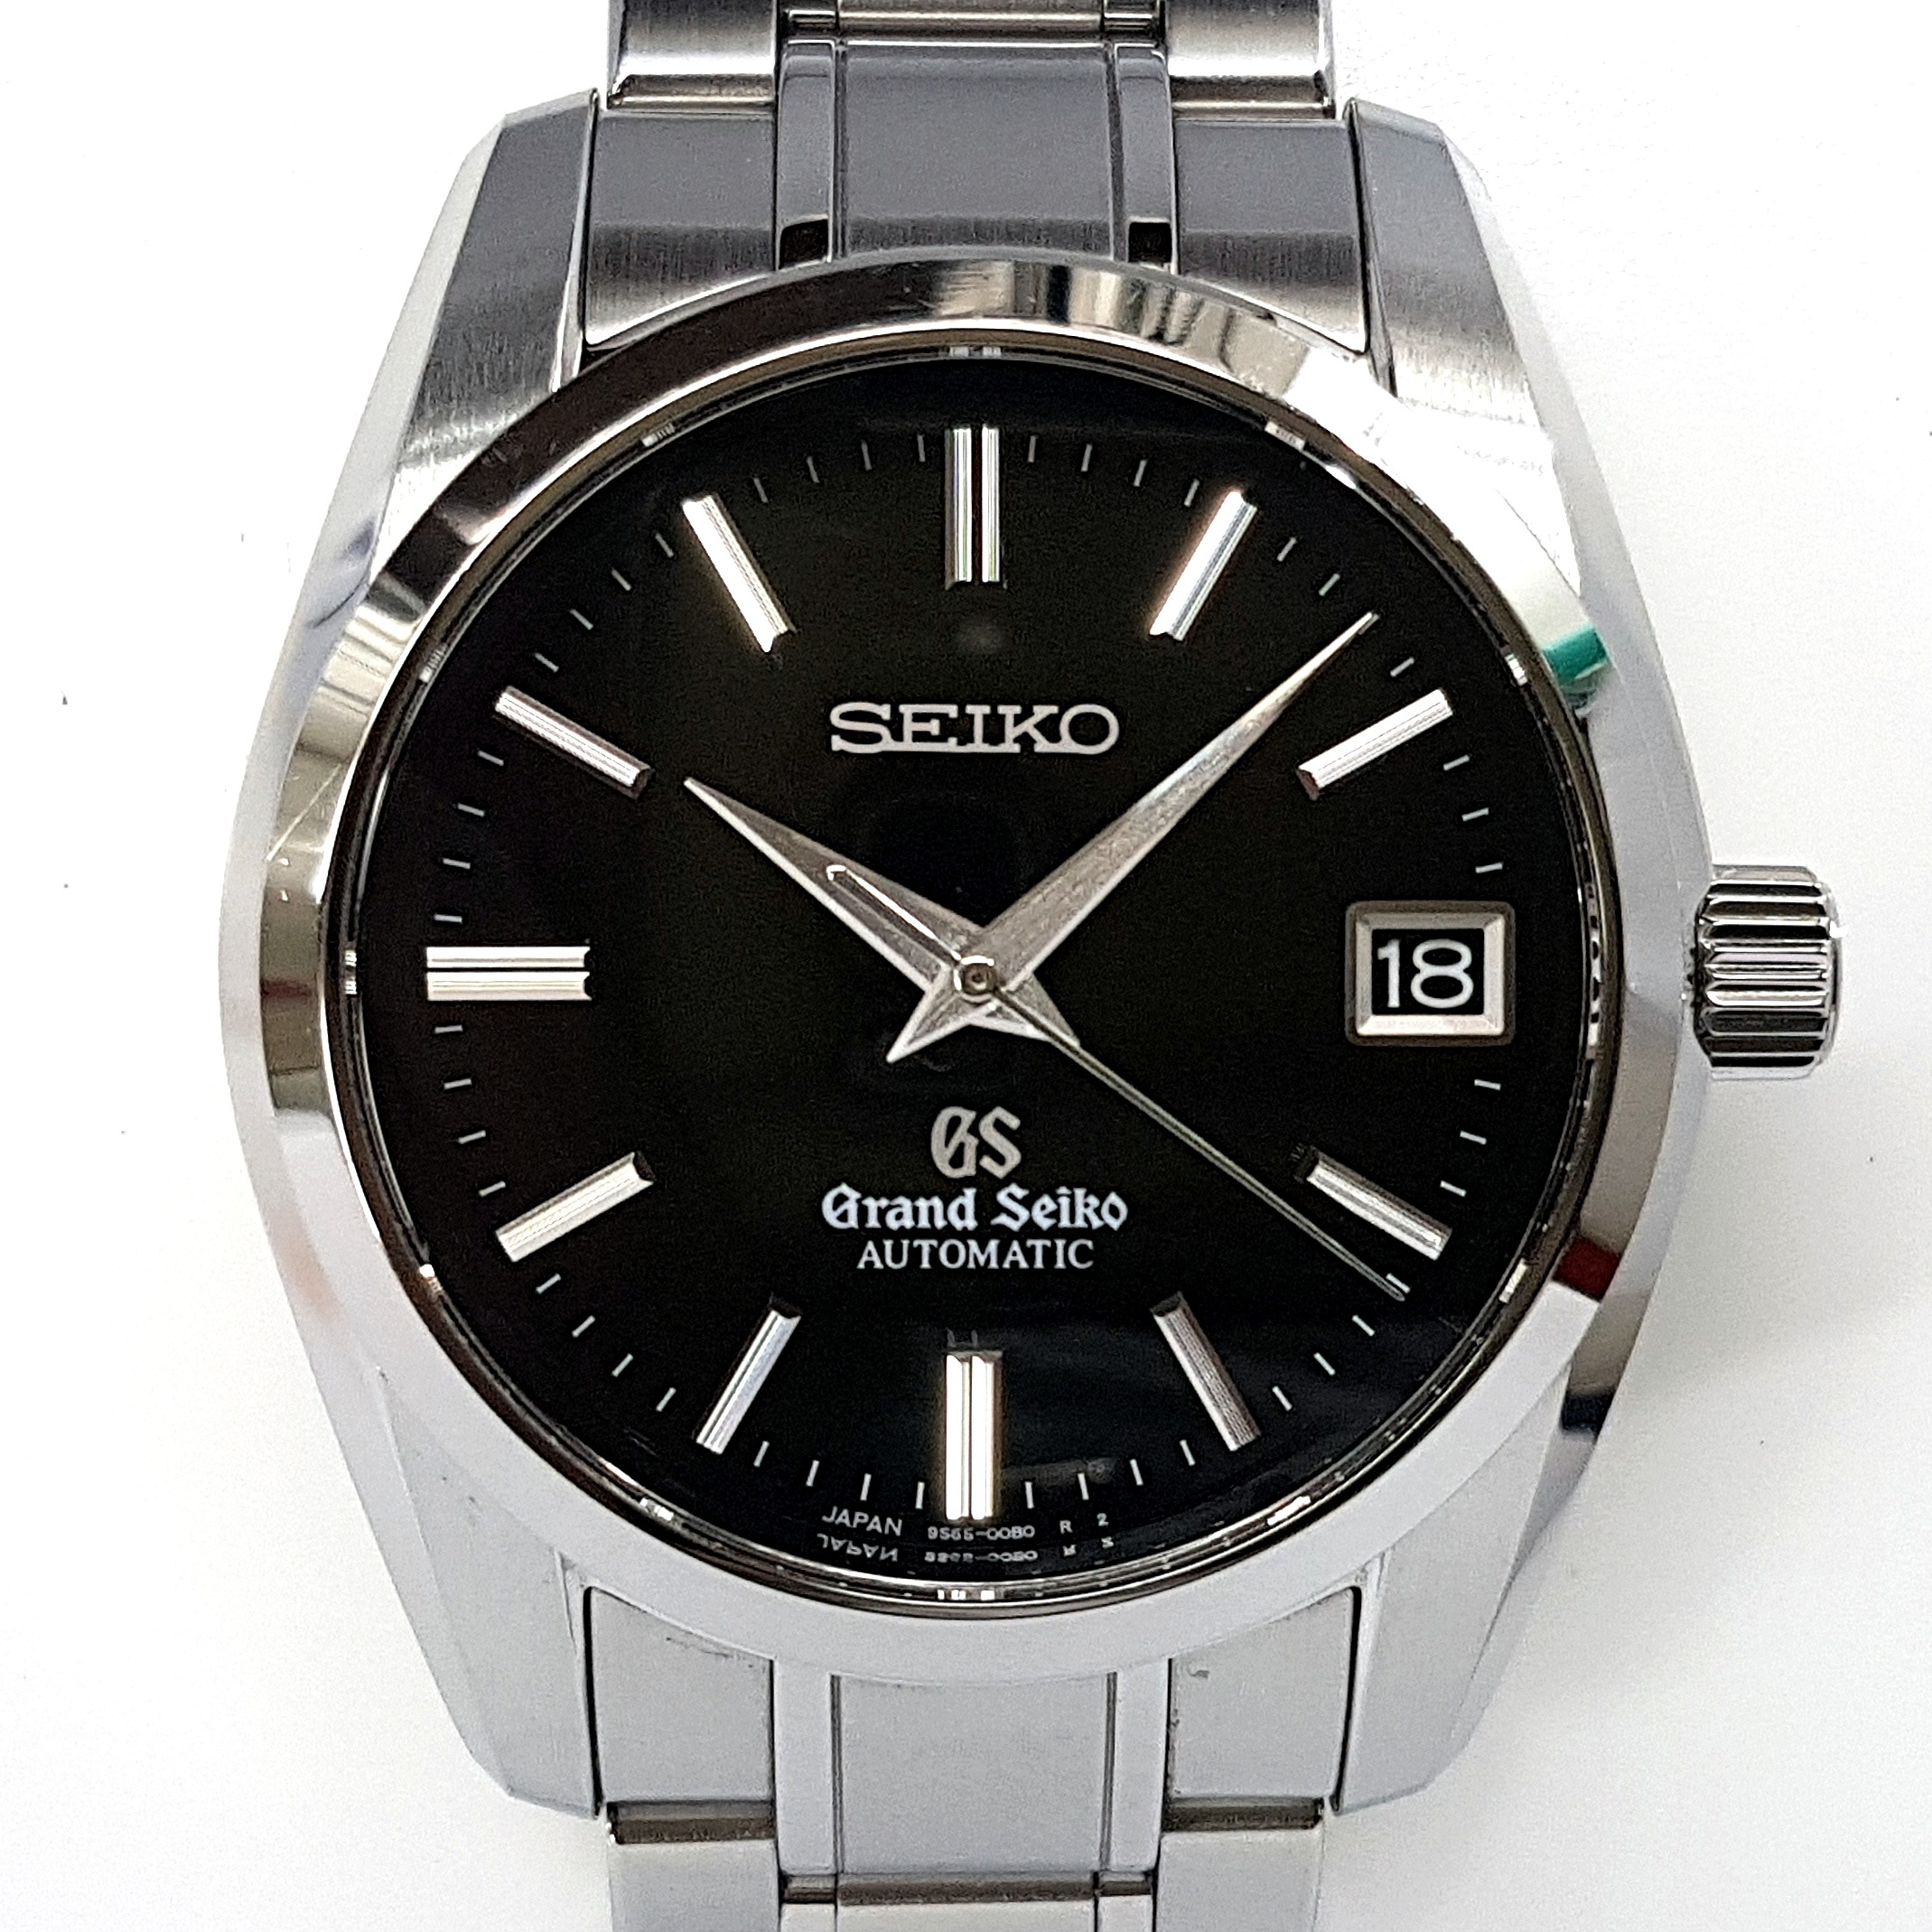 the in wrist doing dealer post seiko quick just with watches grand impressions follow jewelers to we bridal topper prospex be ll of authorized and fine timepieces some presage this